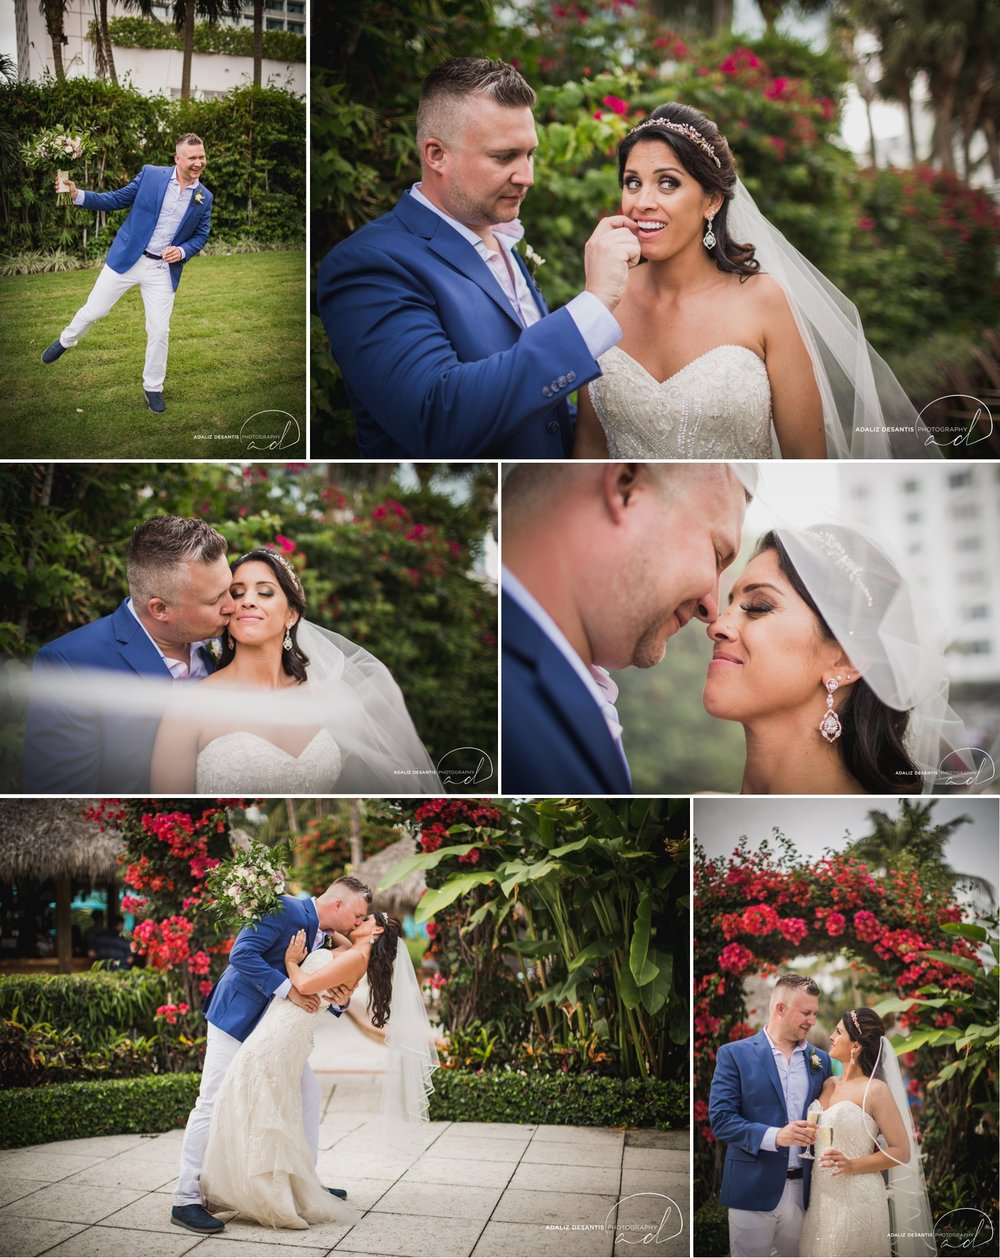 Carmen Alex palms hotel spa miami beach destination wedding lavender roses cuban cigar England cuba bride rose gold elegant Maggie Sottero Badgley Mischka 14.jpg